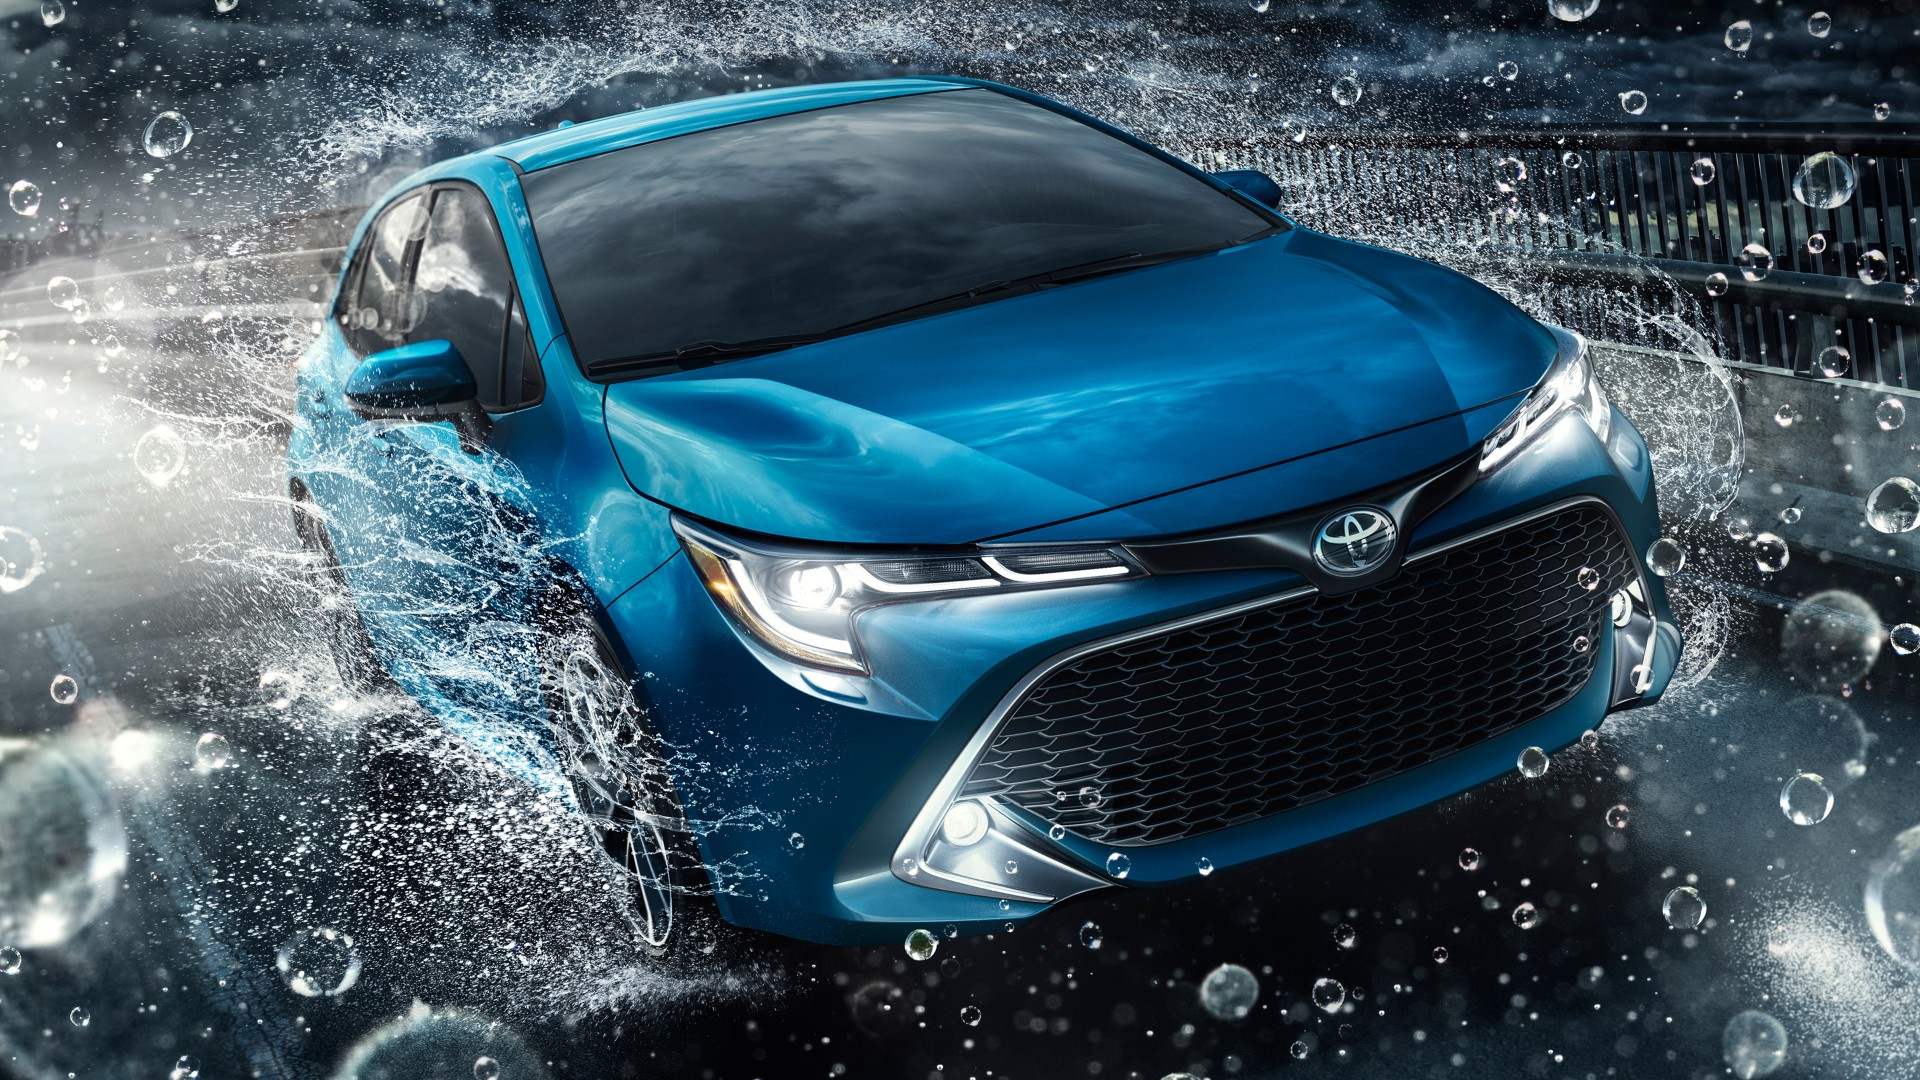 2019 Toyota Corolla Xse Hatchback 4k 2 Wallpaper Hd Car